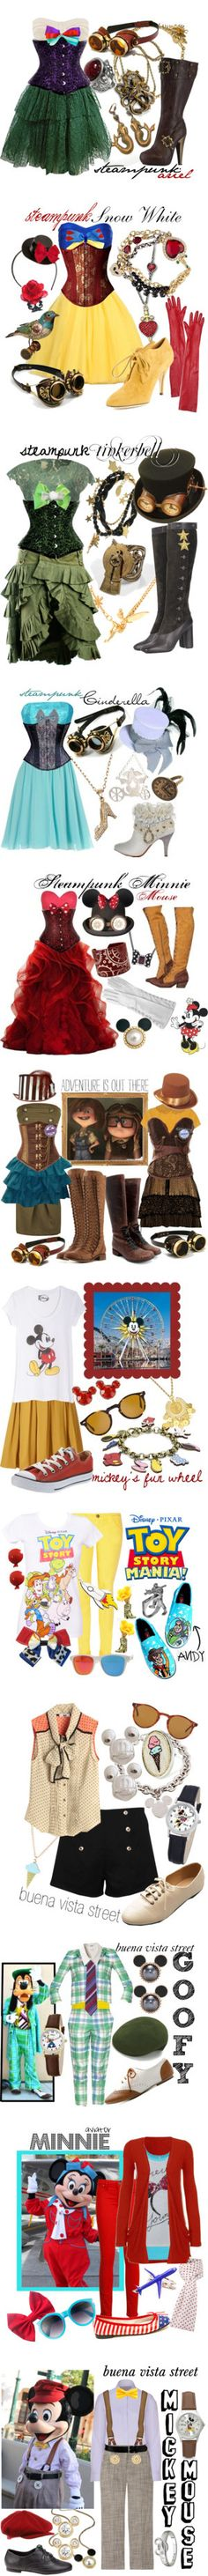 Disney Inspired by princesschandler on Polyvore featuring Alexander McQueen, Warehouse, Swarovski, Lanvin, 7 For All Mankind, US Fairytailes, Bettye Muller, Disney Couture, Philosophy di Alberta Ferretti and Marc Jacobs